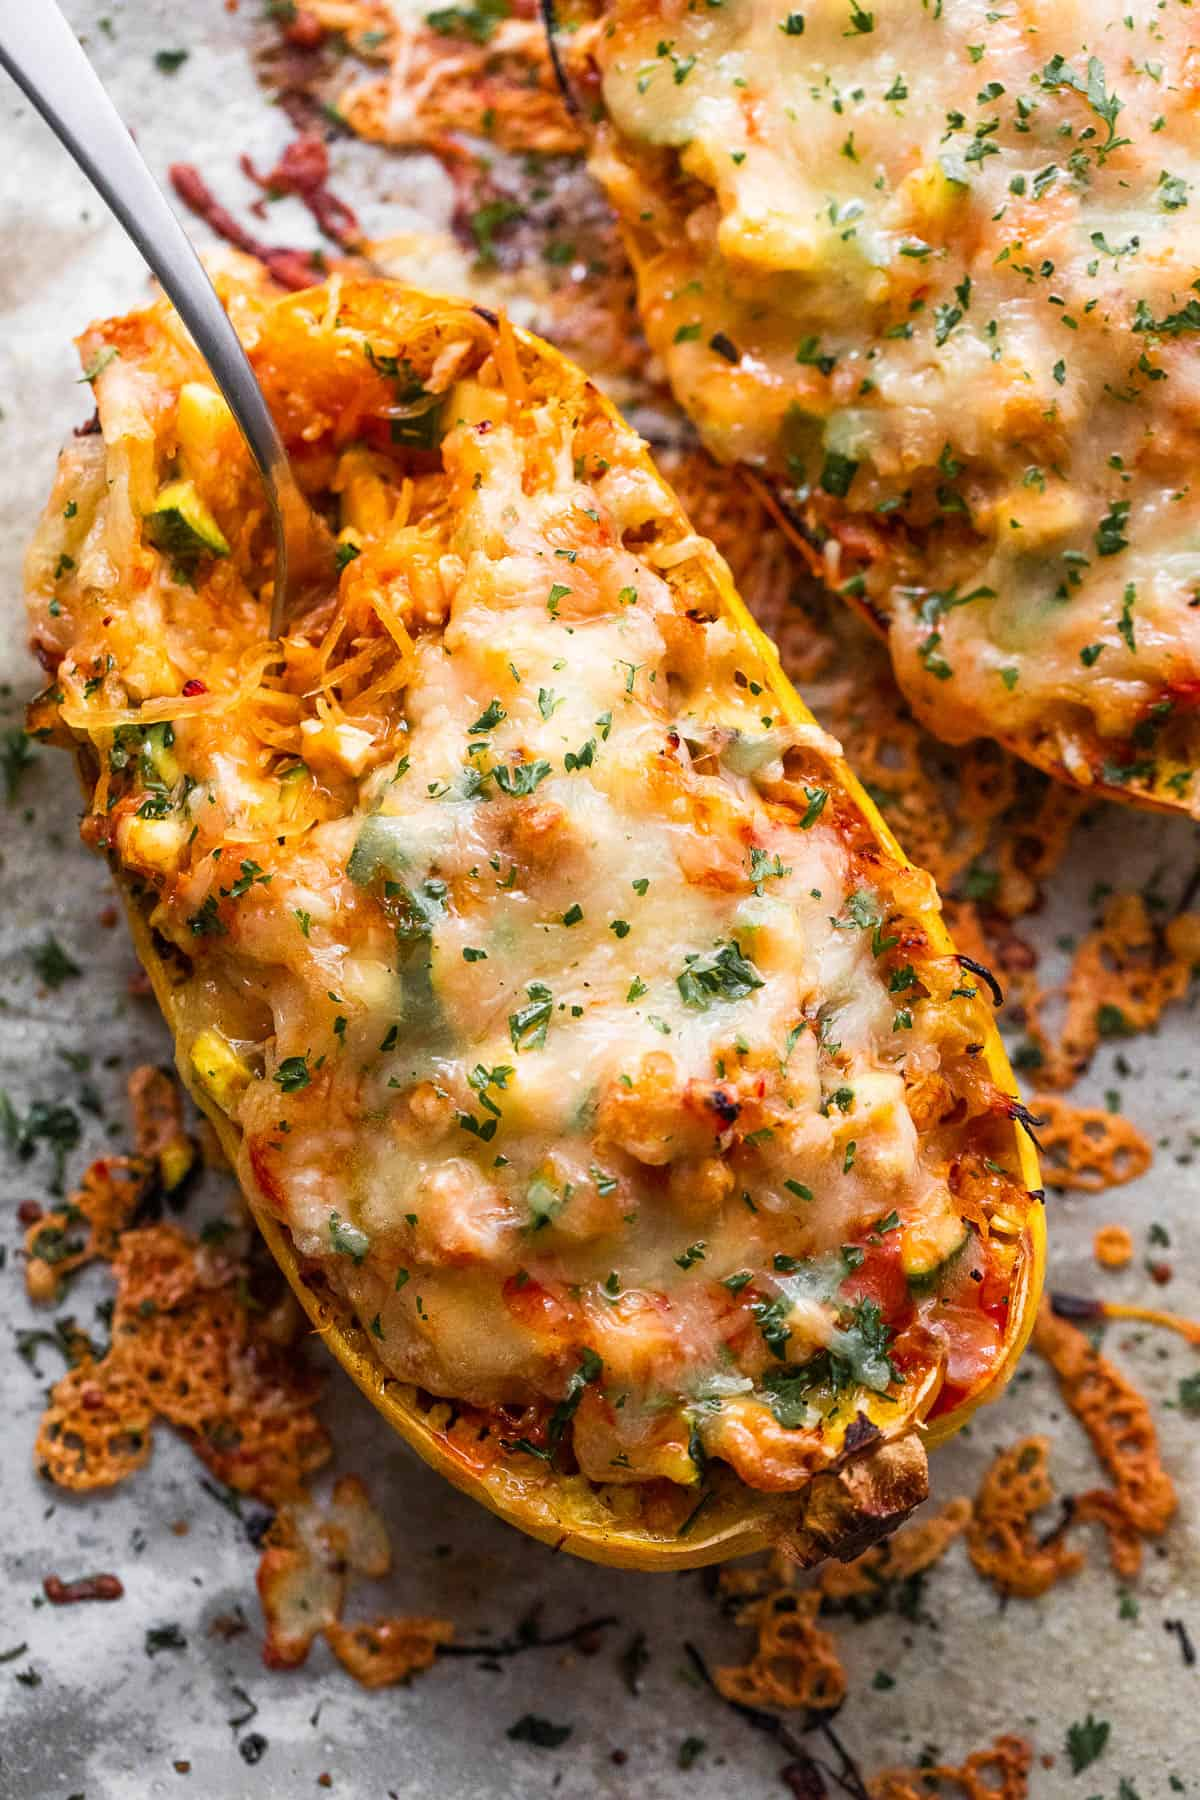 spaghetti squash stuffed with chicken enchilada filling and topped with melted cheese